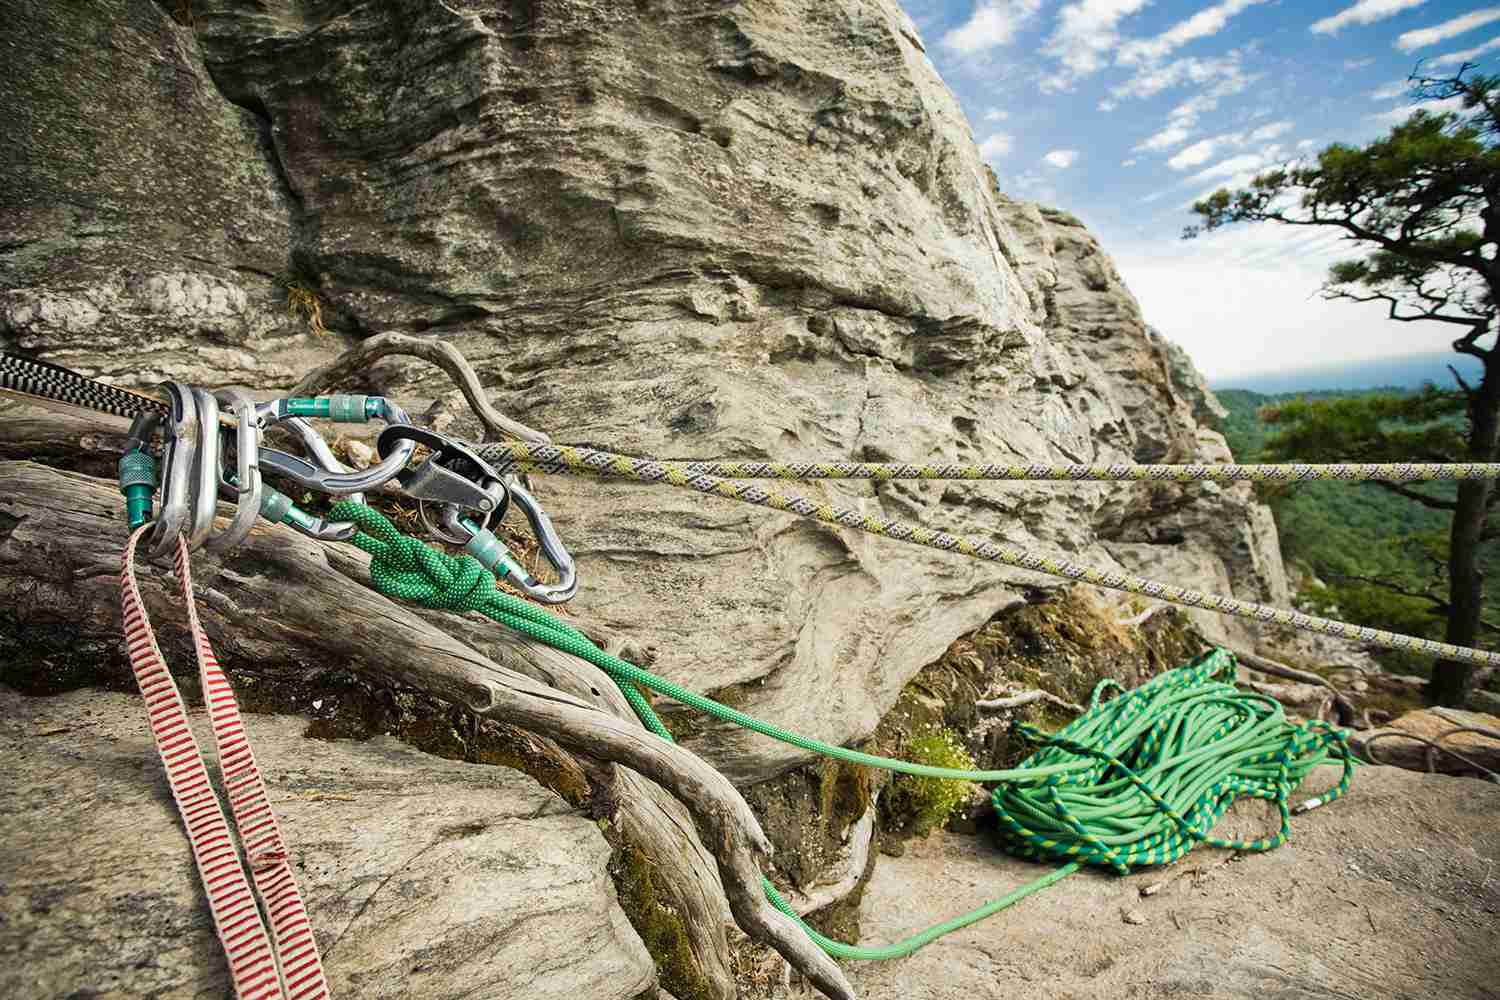 Carabiners on an anchor attached to cliff.